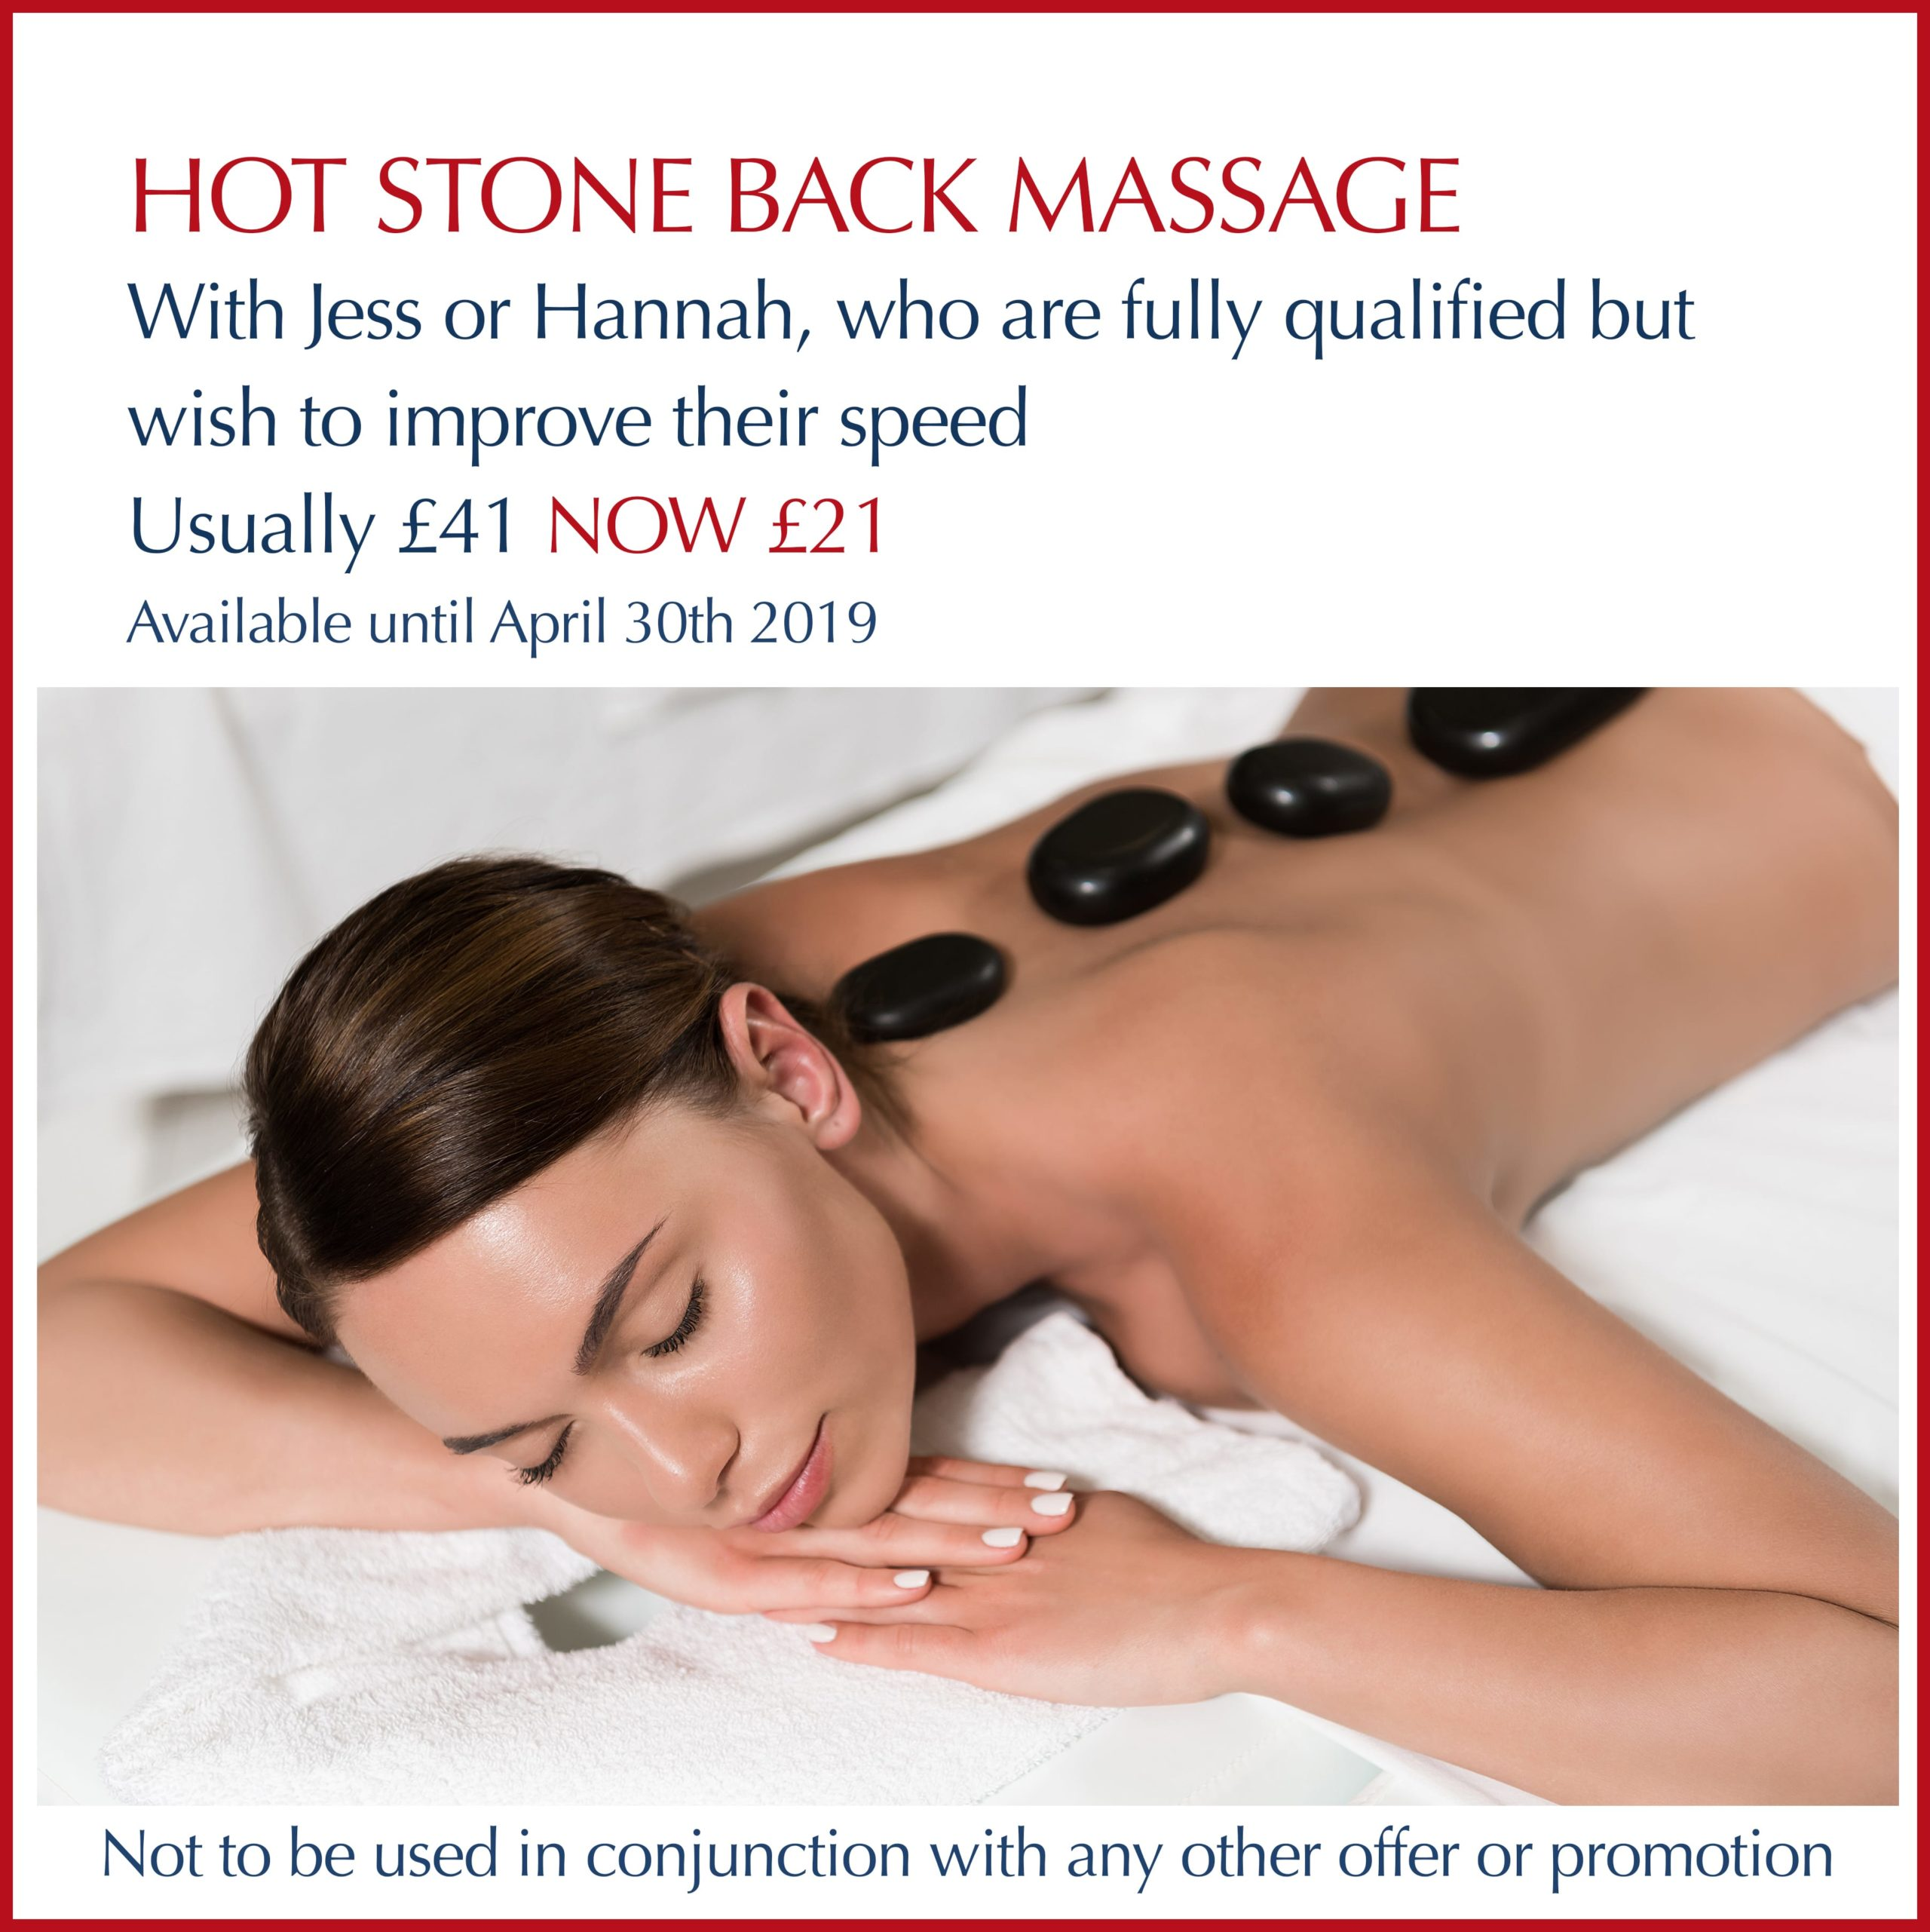 Lady lying on treatment bed with hot stones on her back